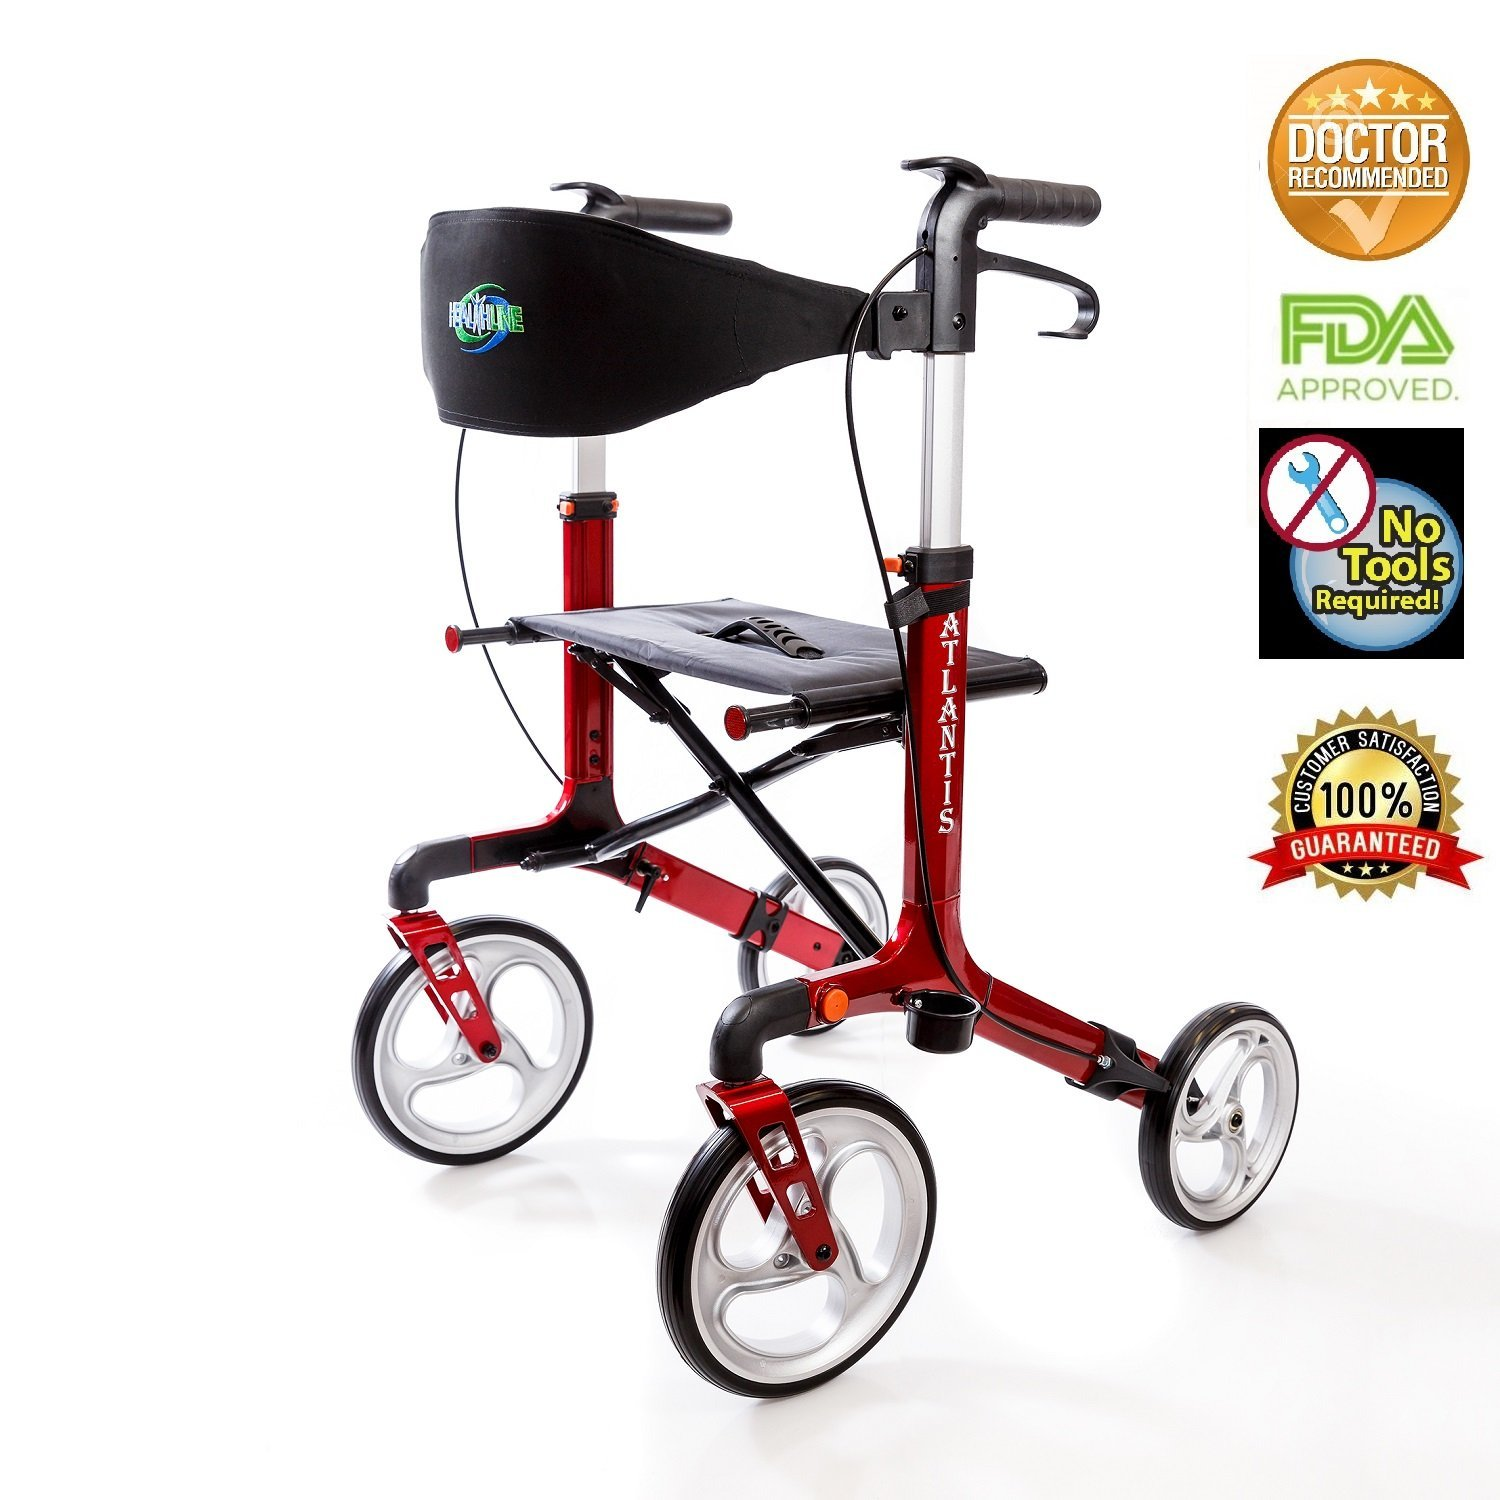 Atlantis Lightweight Rollator Walker with Seat and Wheels, Euro Style Walker - Medical Aluminum Lightweight Folding Rollator Walker with Seat and Large Wheels 10 Inch and Bag, Red